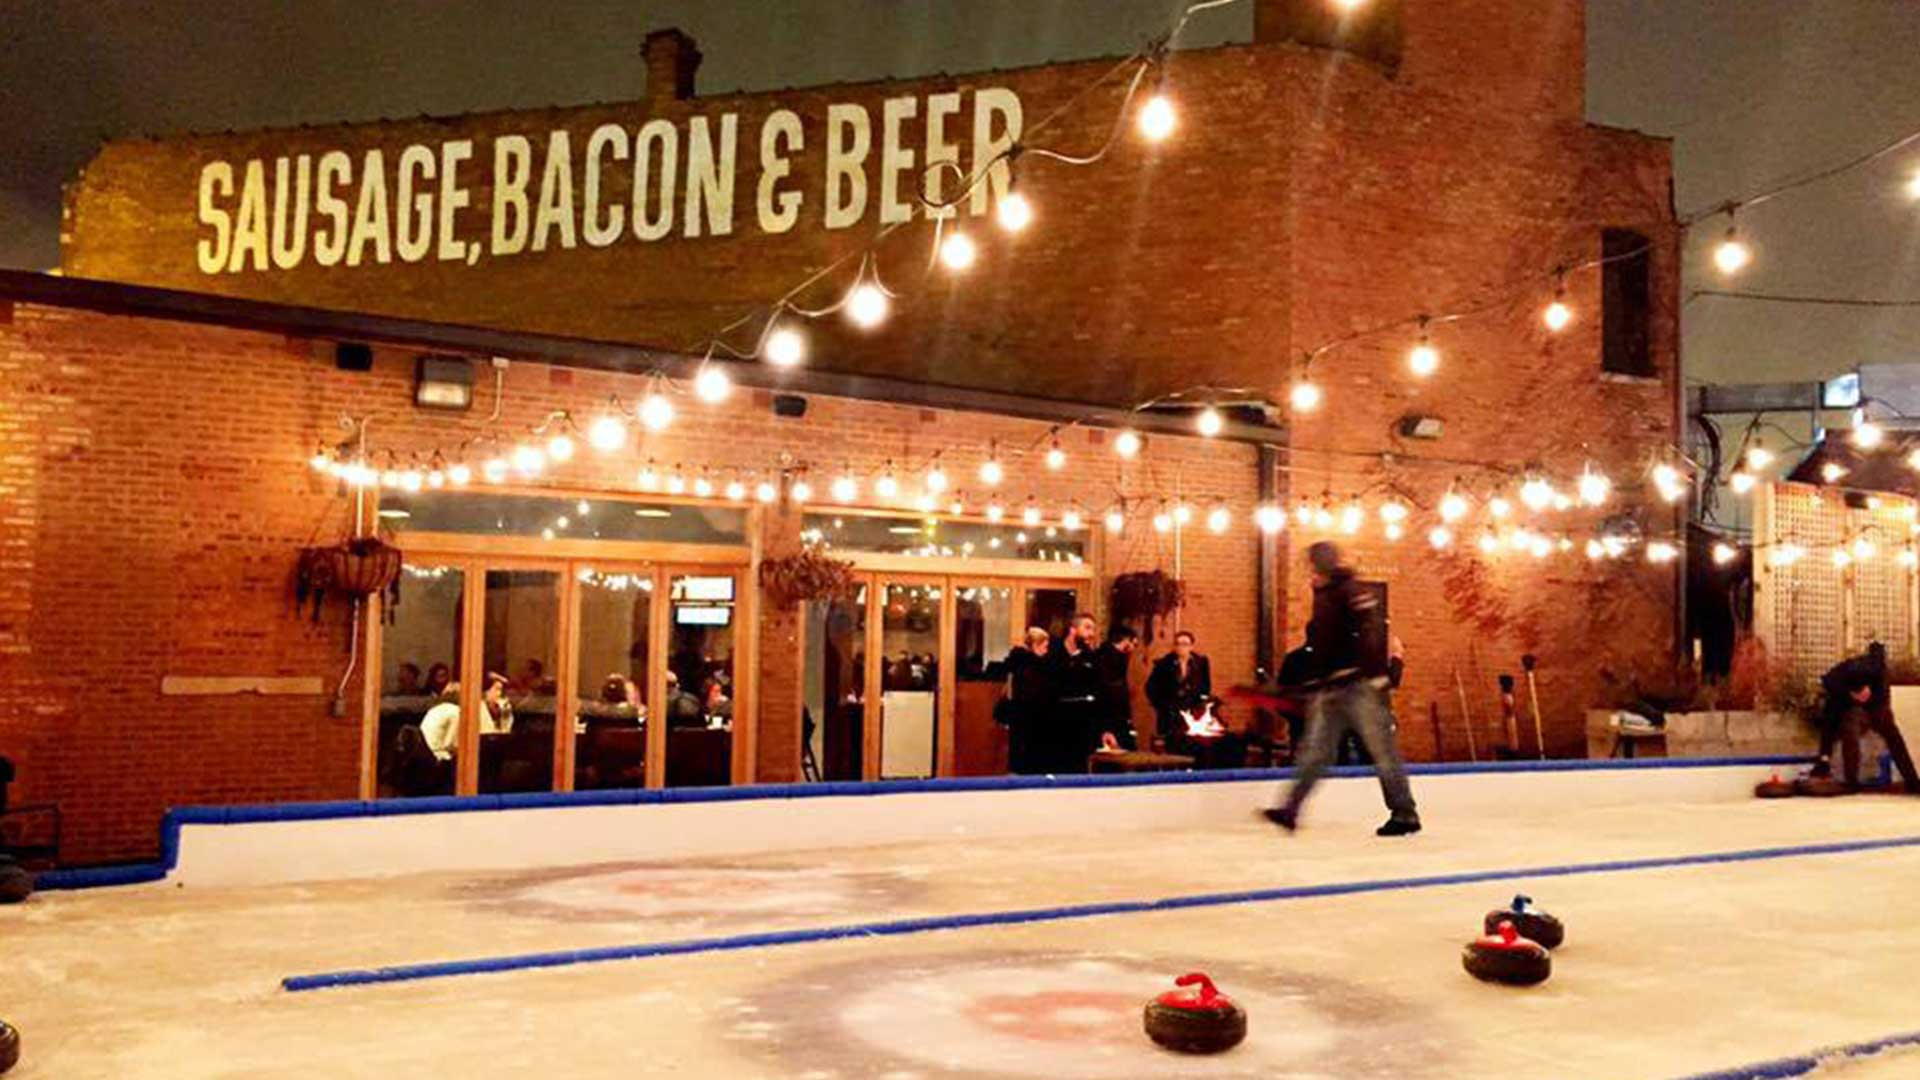 An outdoor ice curling scene at Kaiser Tiger in Chicago, Illinois